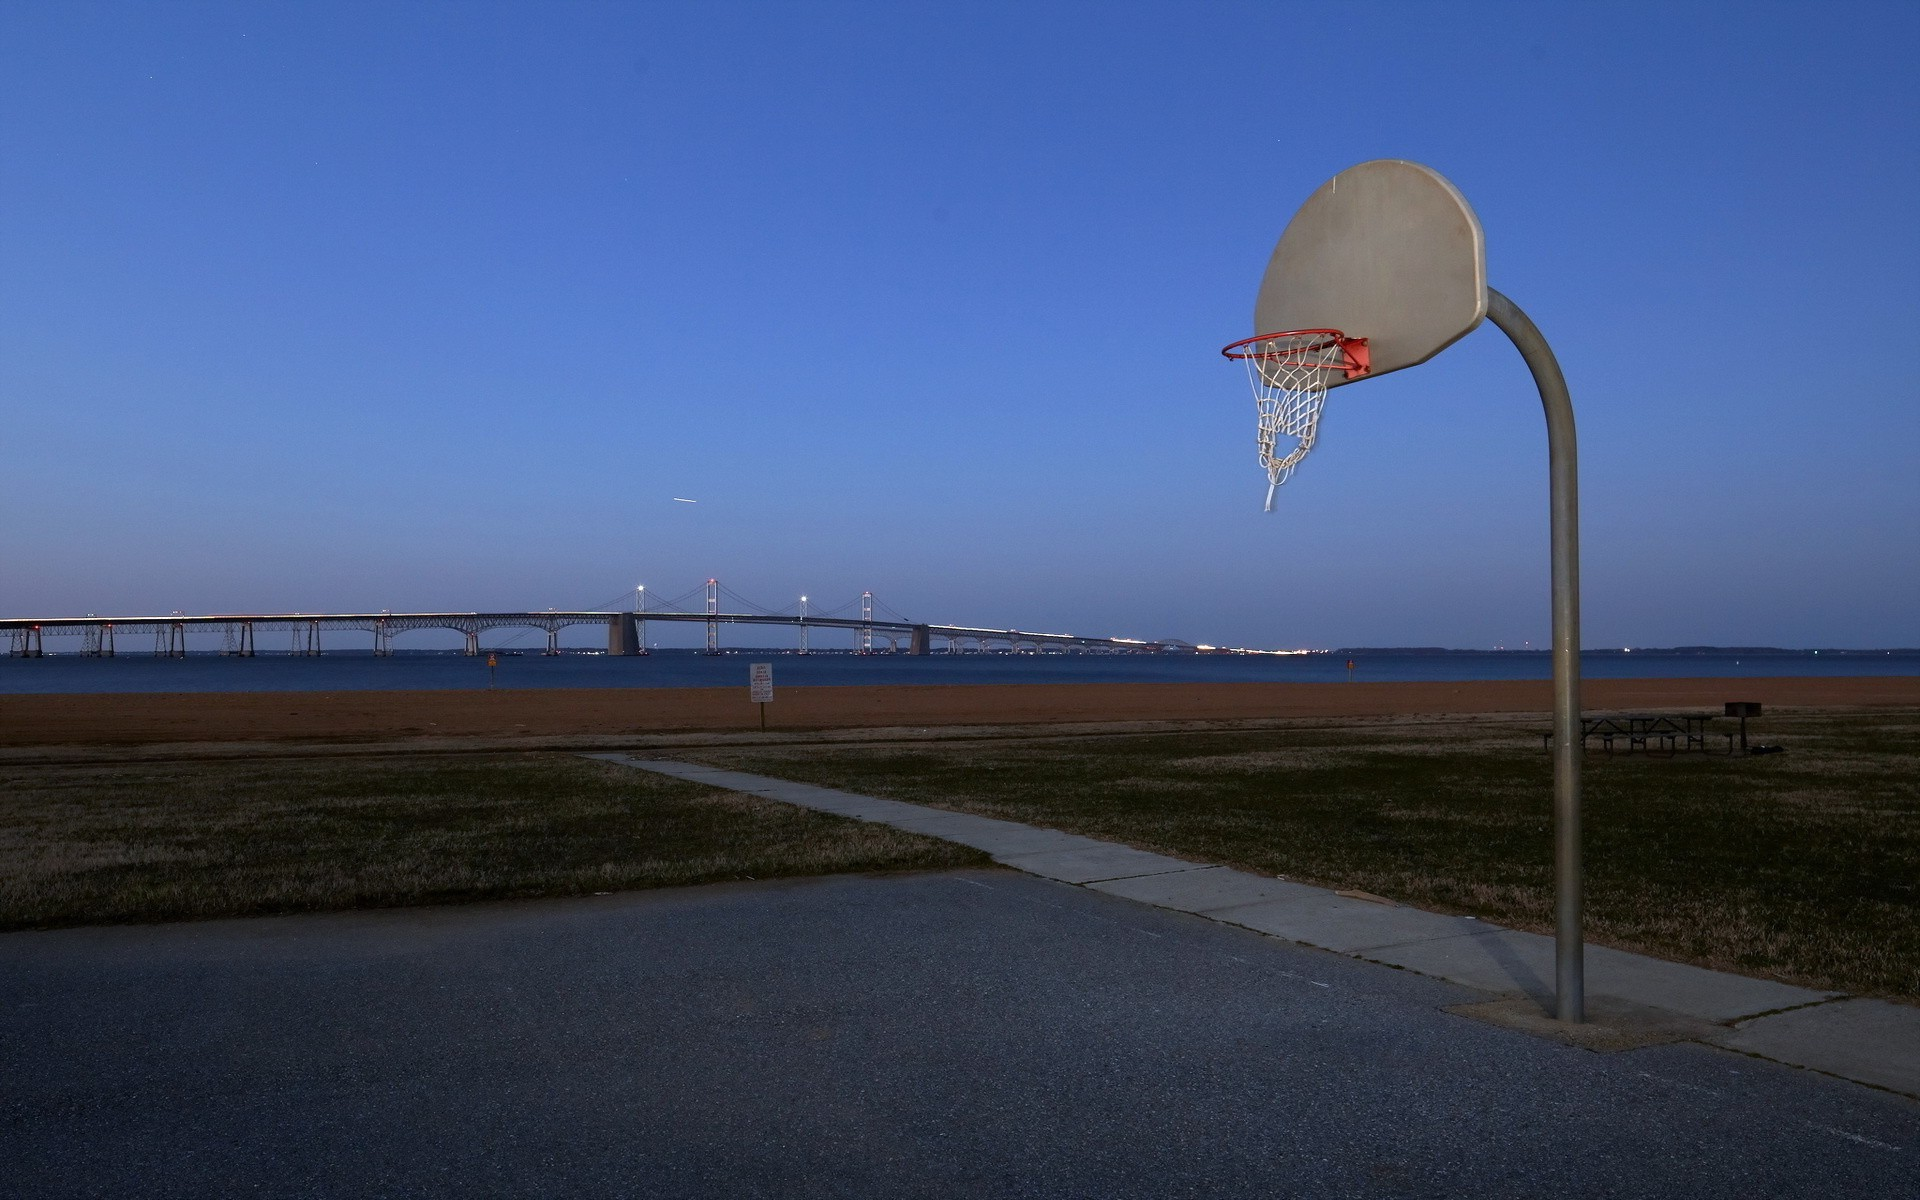 basketball sky landscape travel outdoors water